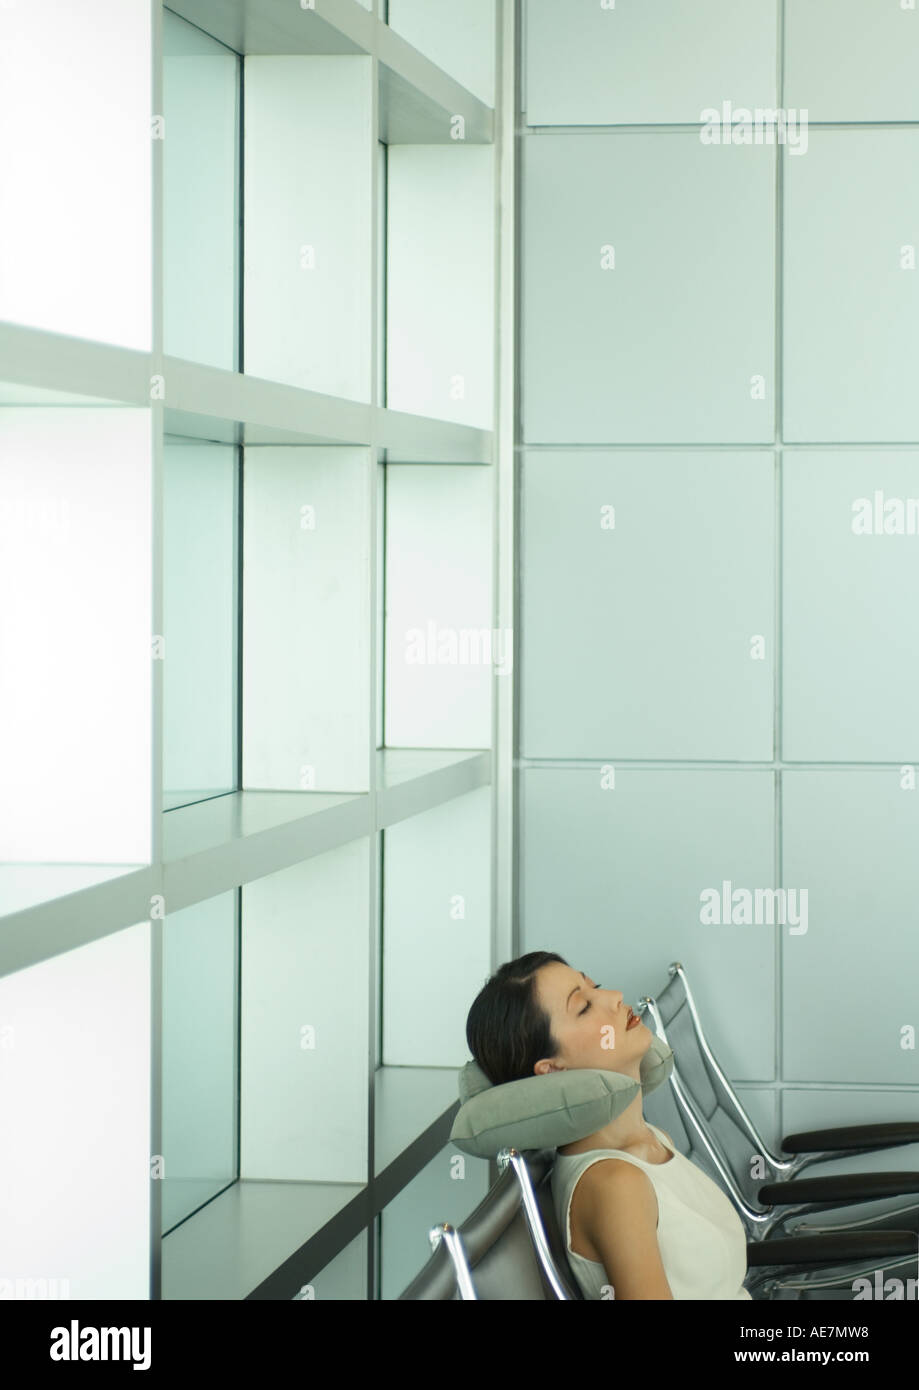 Woman sleeping in airport lounge, using neck cushion - Stock Image